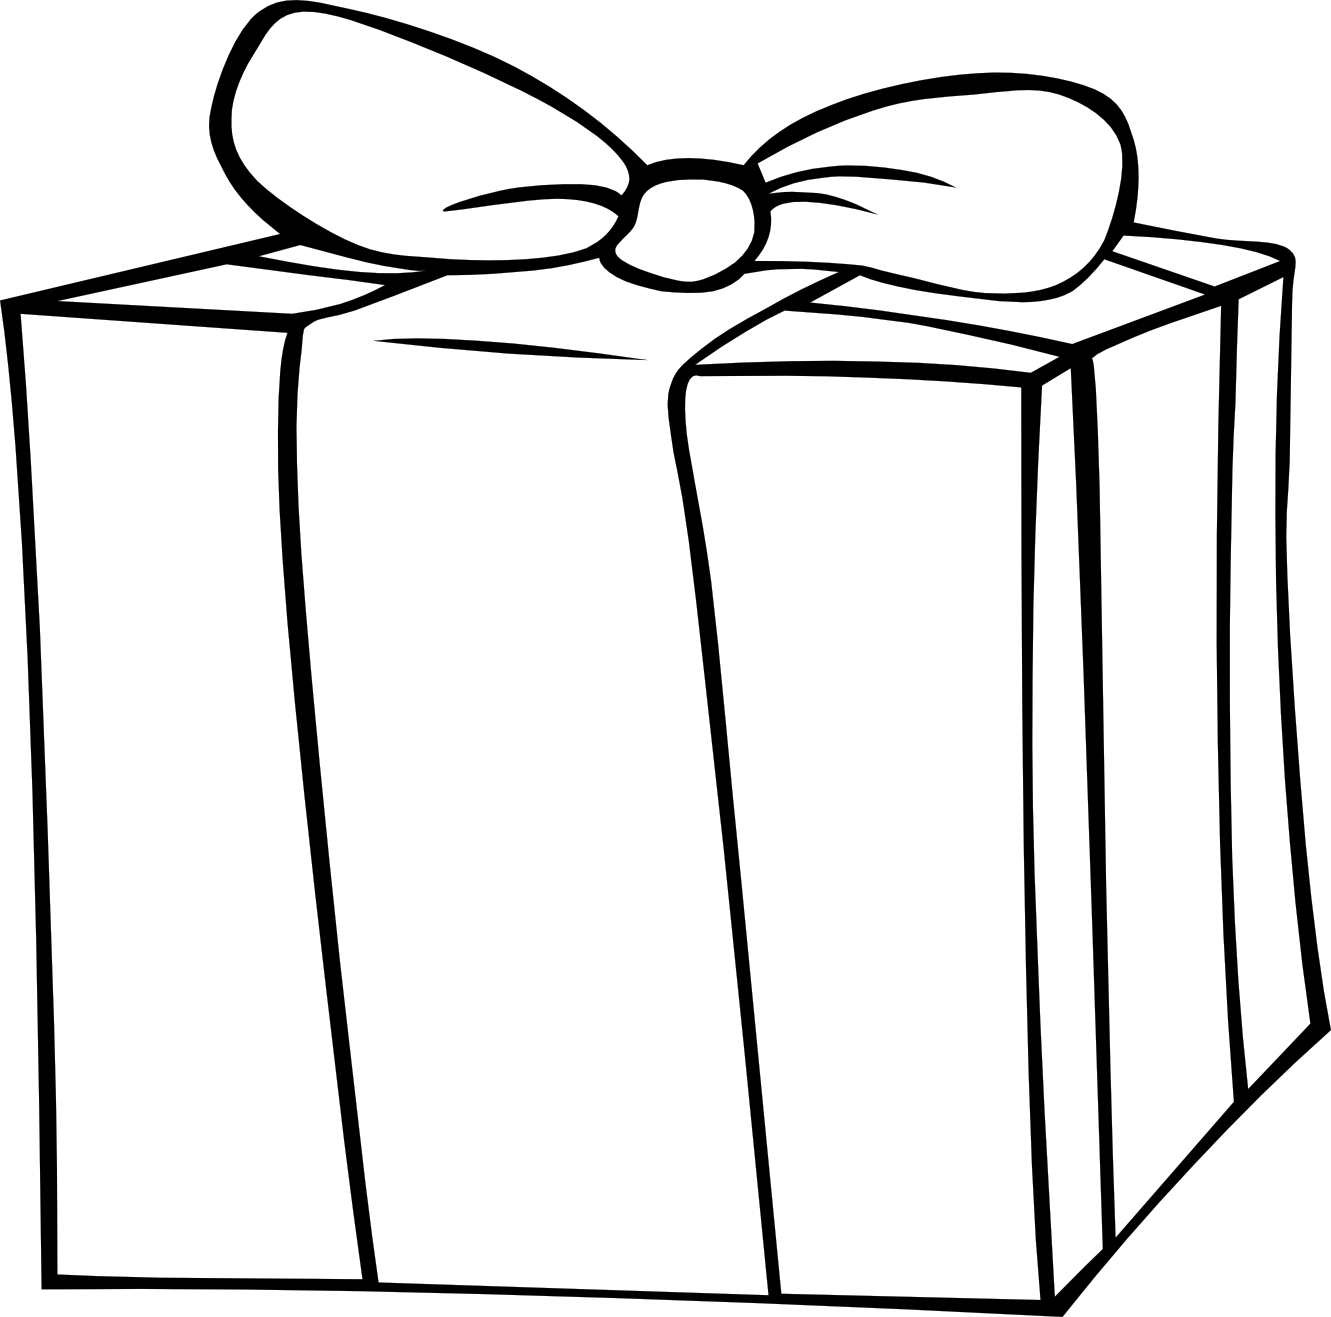 Presents Clipart Black And White   Clipart Panda   Free Clipart Images